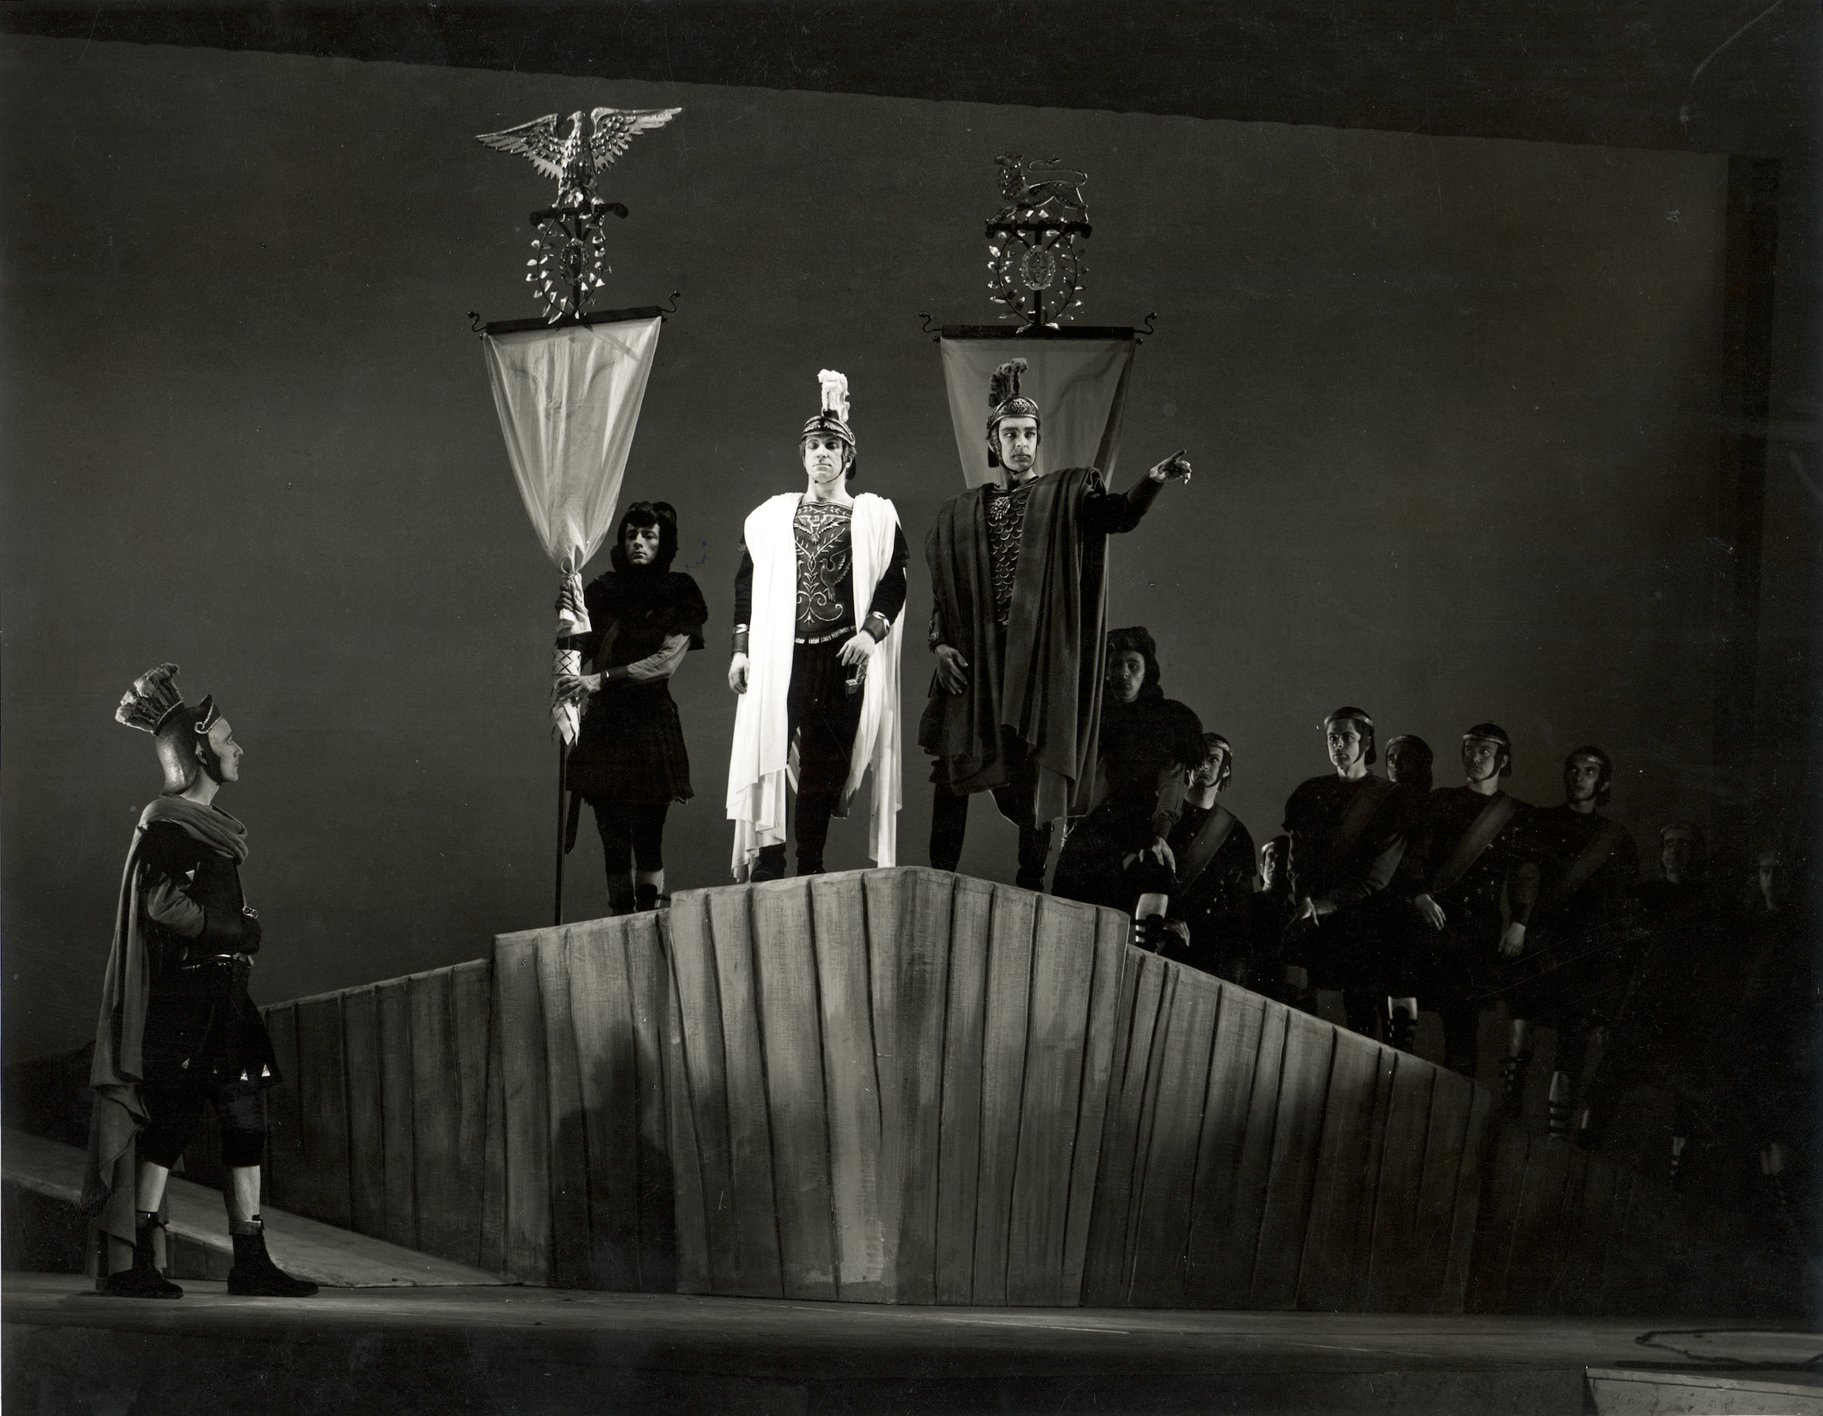 Octavius and Mark Antony stand at the edge of a platform with their troops at their backs in the 1957 production of Julius Caesar.